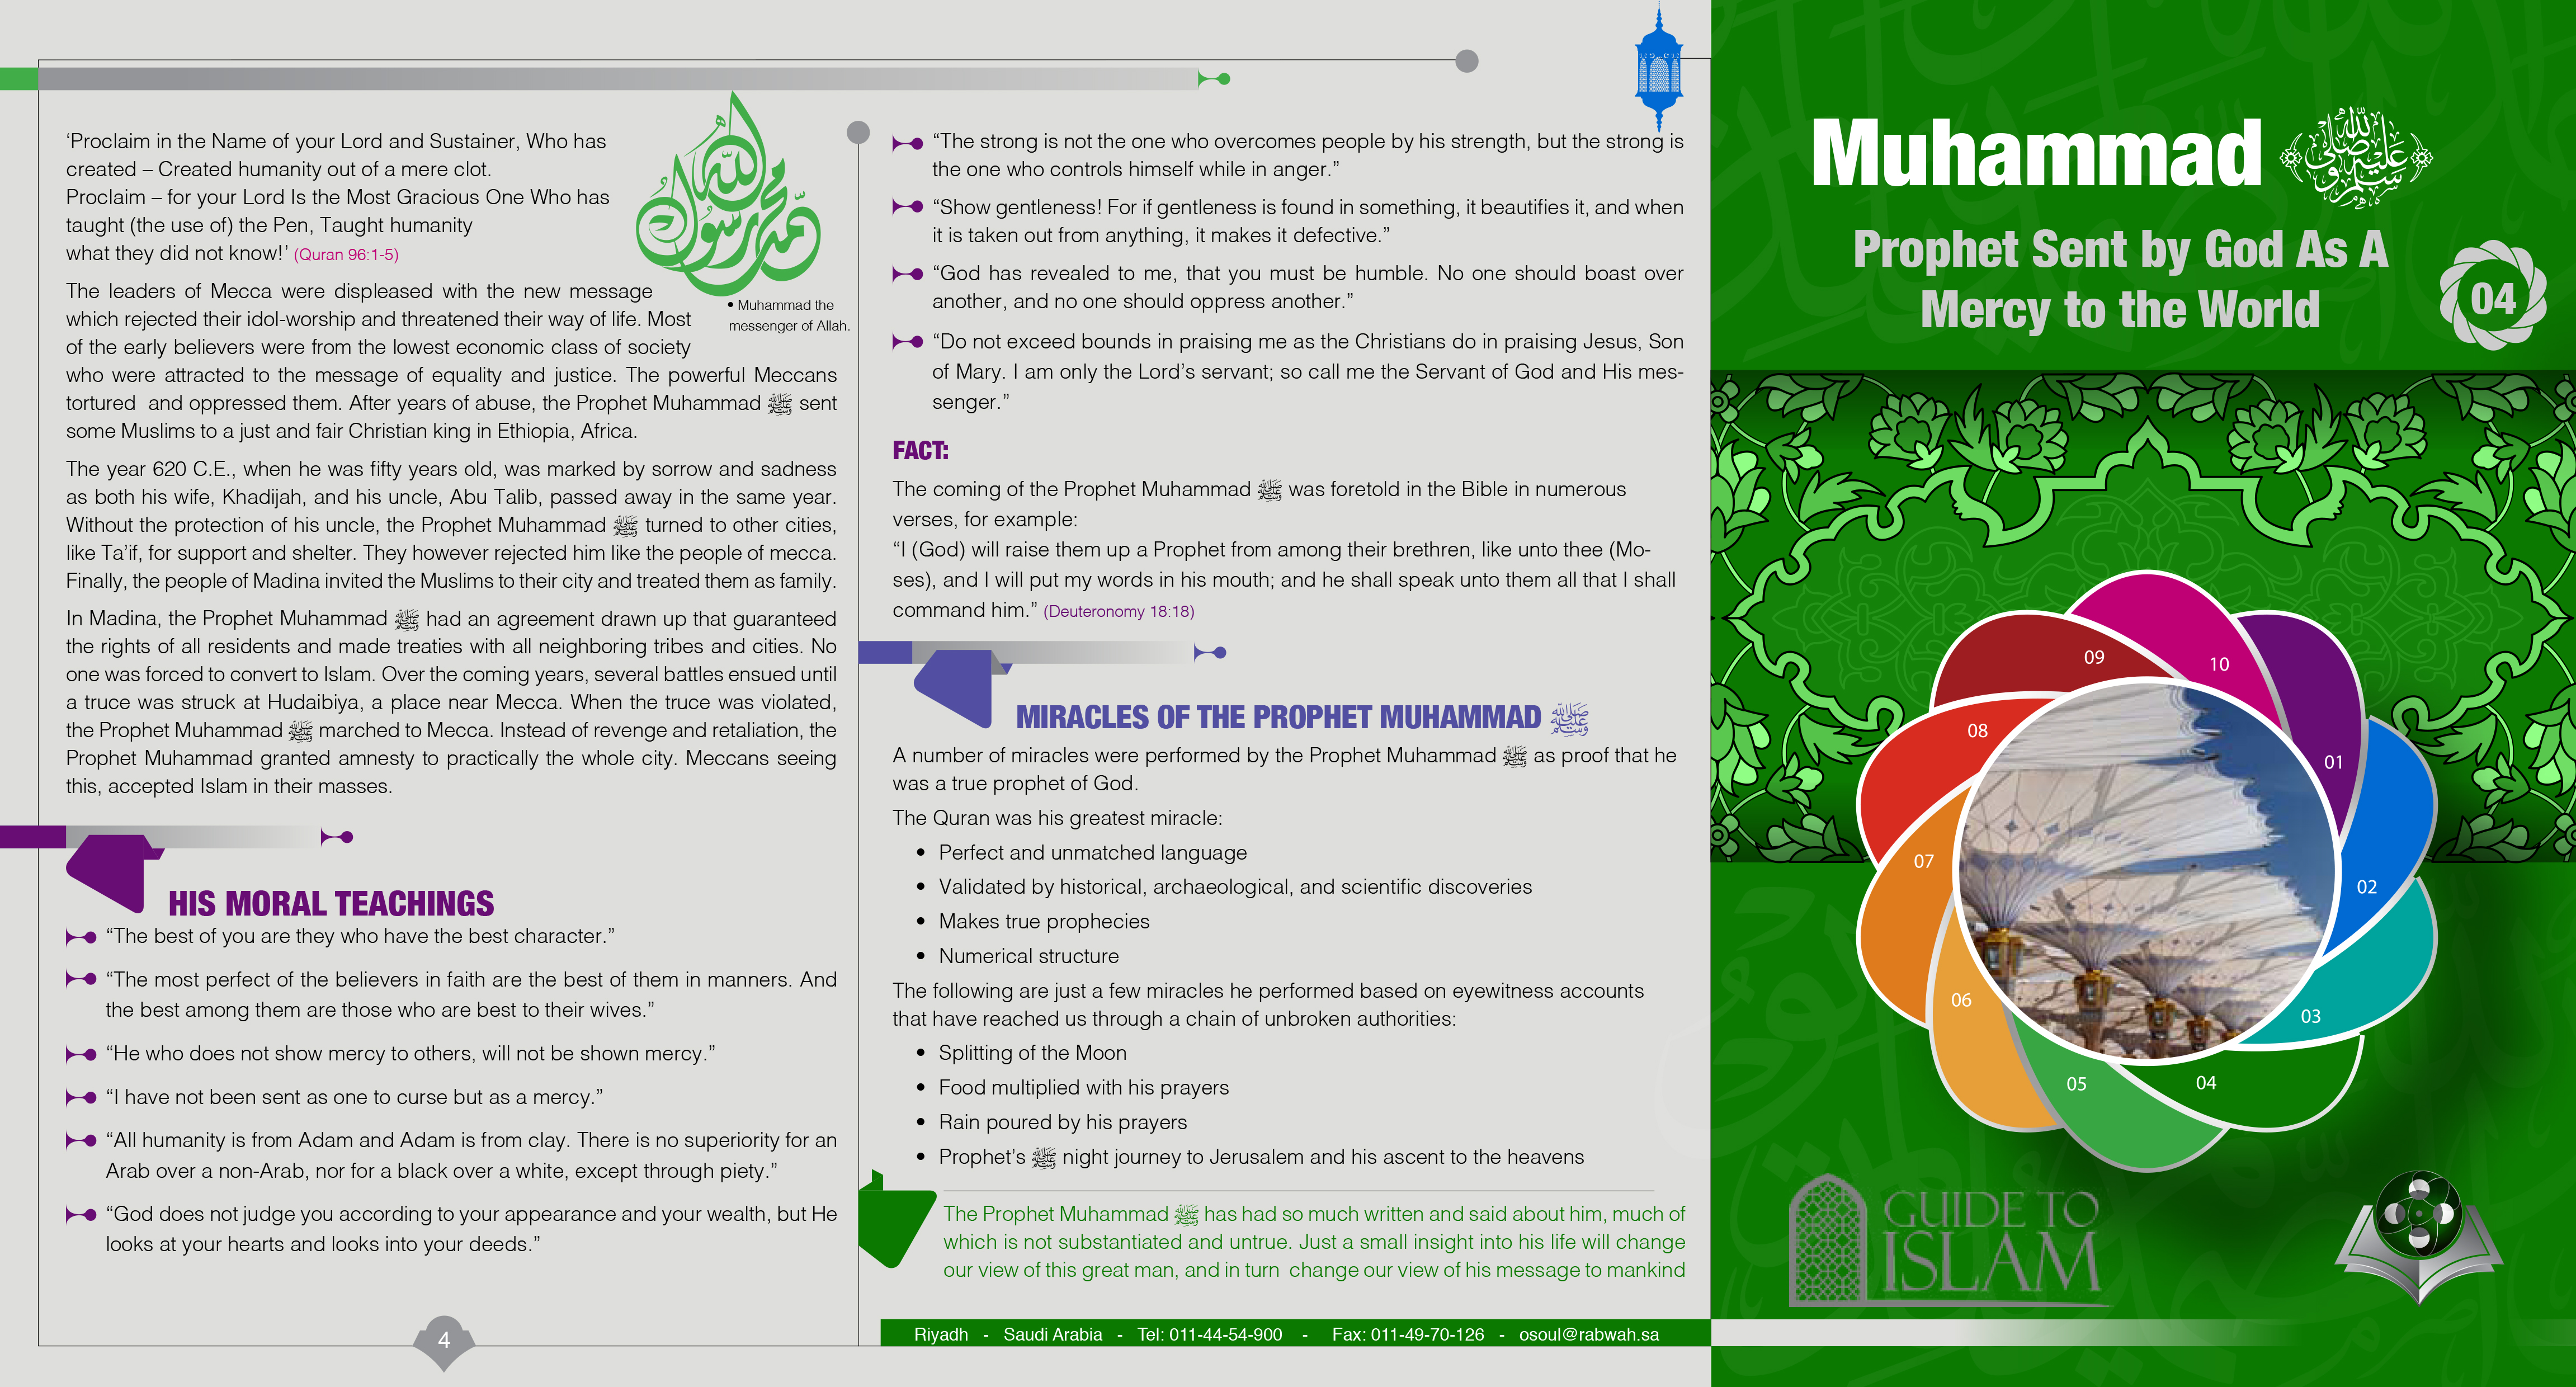 Muhammad (pbuh) prophet sent bu God as a mercy to the world